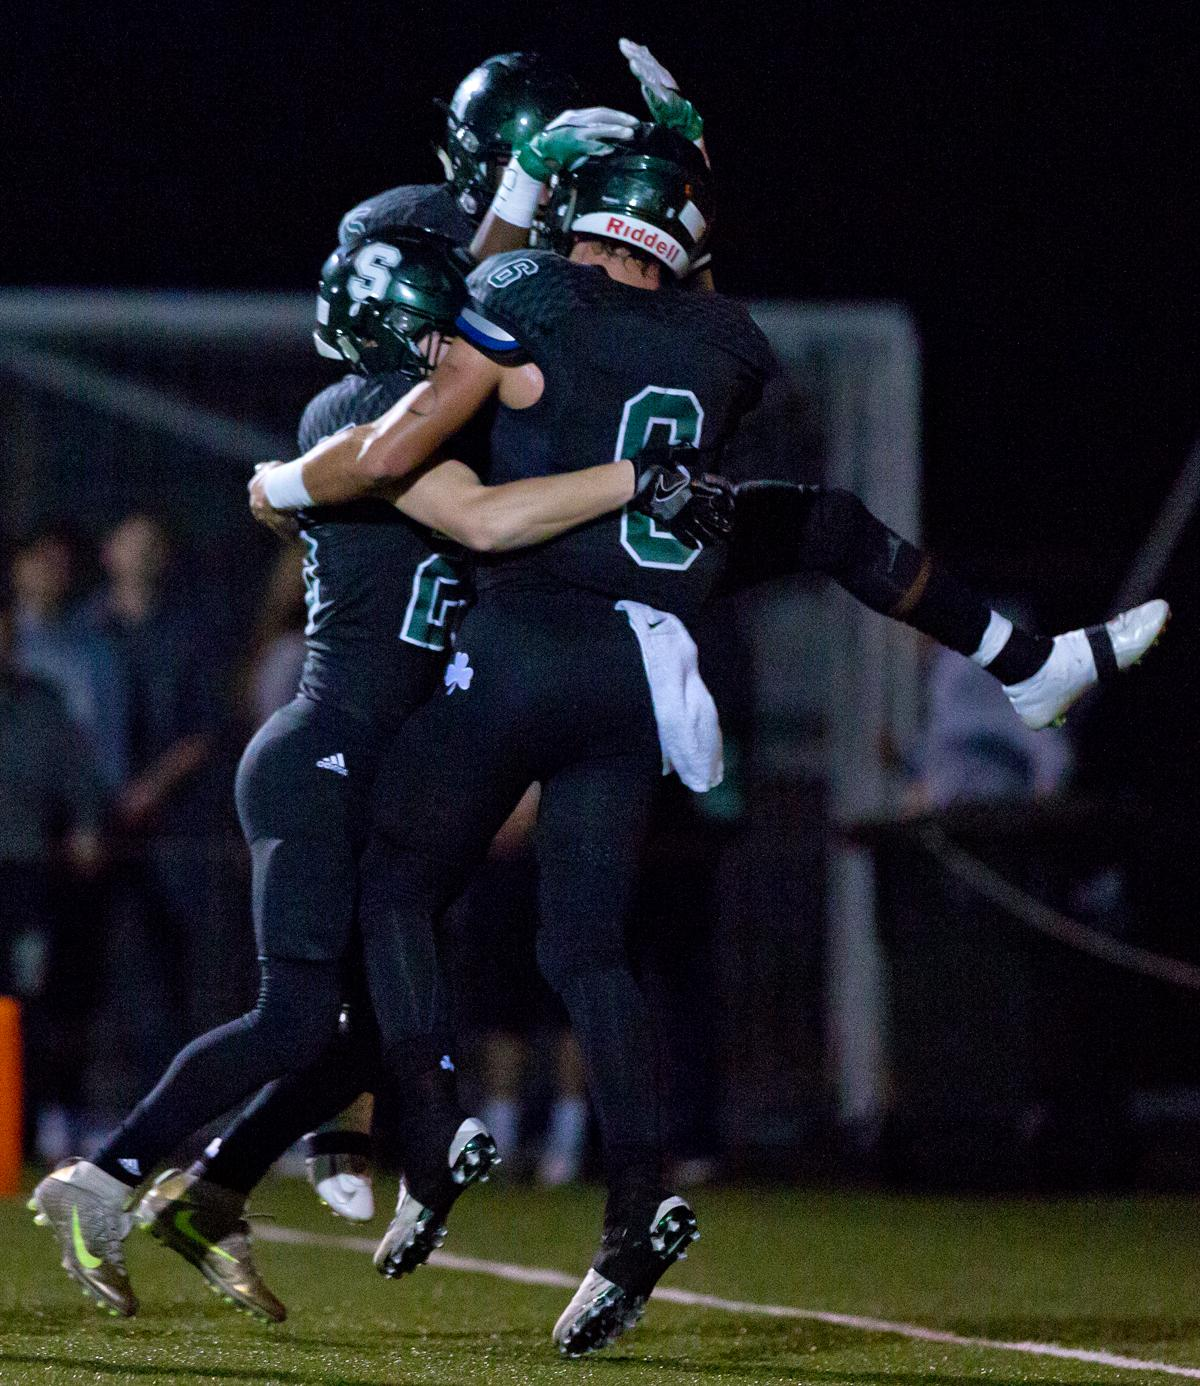 The Sheldon offense celebrates a touchdown by quarterback Zach Diehl (#6). The Sheldon Irish defeated the Lincoln Cardinals 38 to 28 to advance to the quarterfinals of the OSAA 6A playoffs. Photo by Ben Lonergan, Oregon News Lab